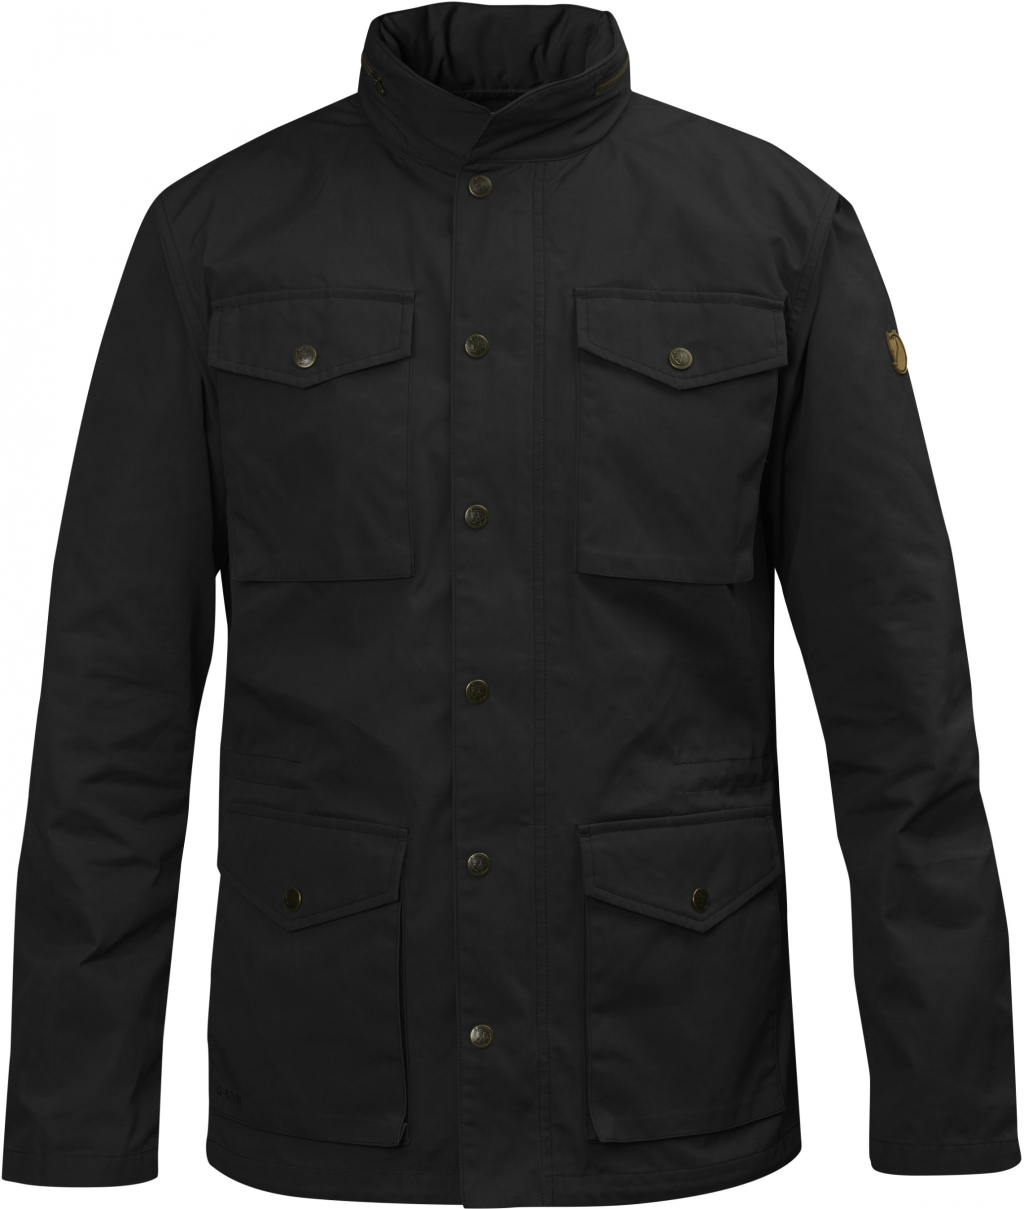 FjallRaven Raven Jacket Black-30